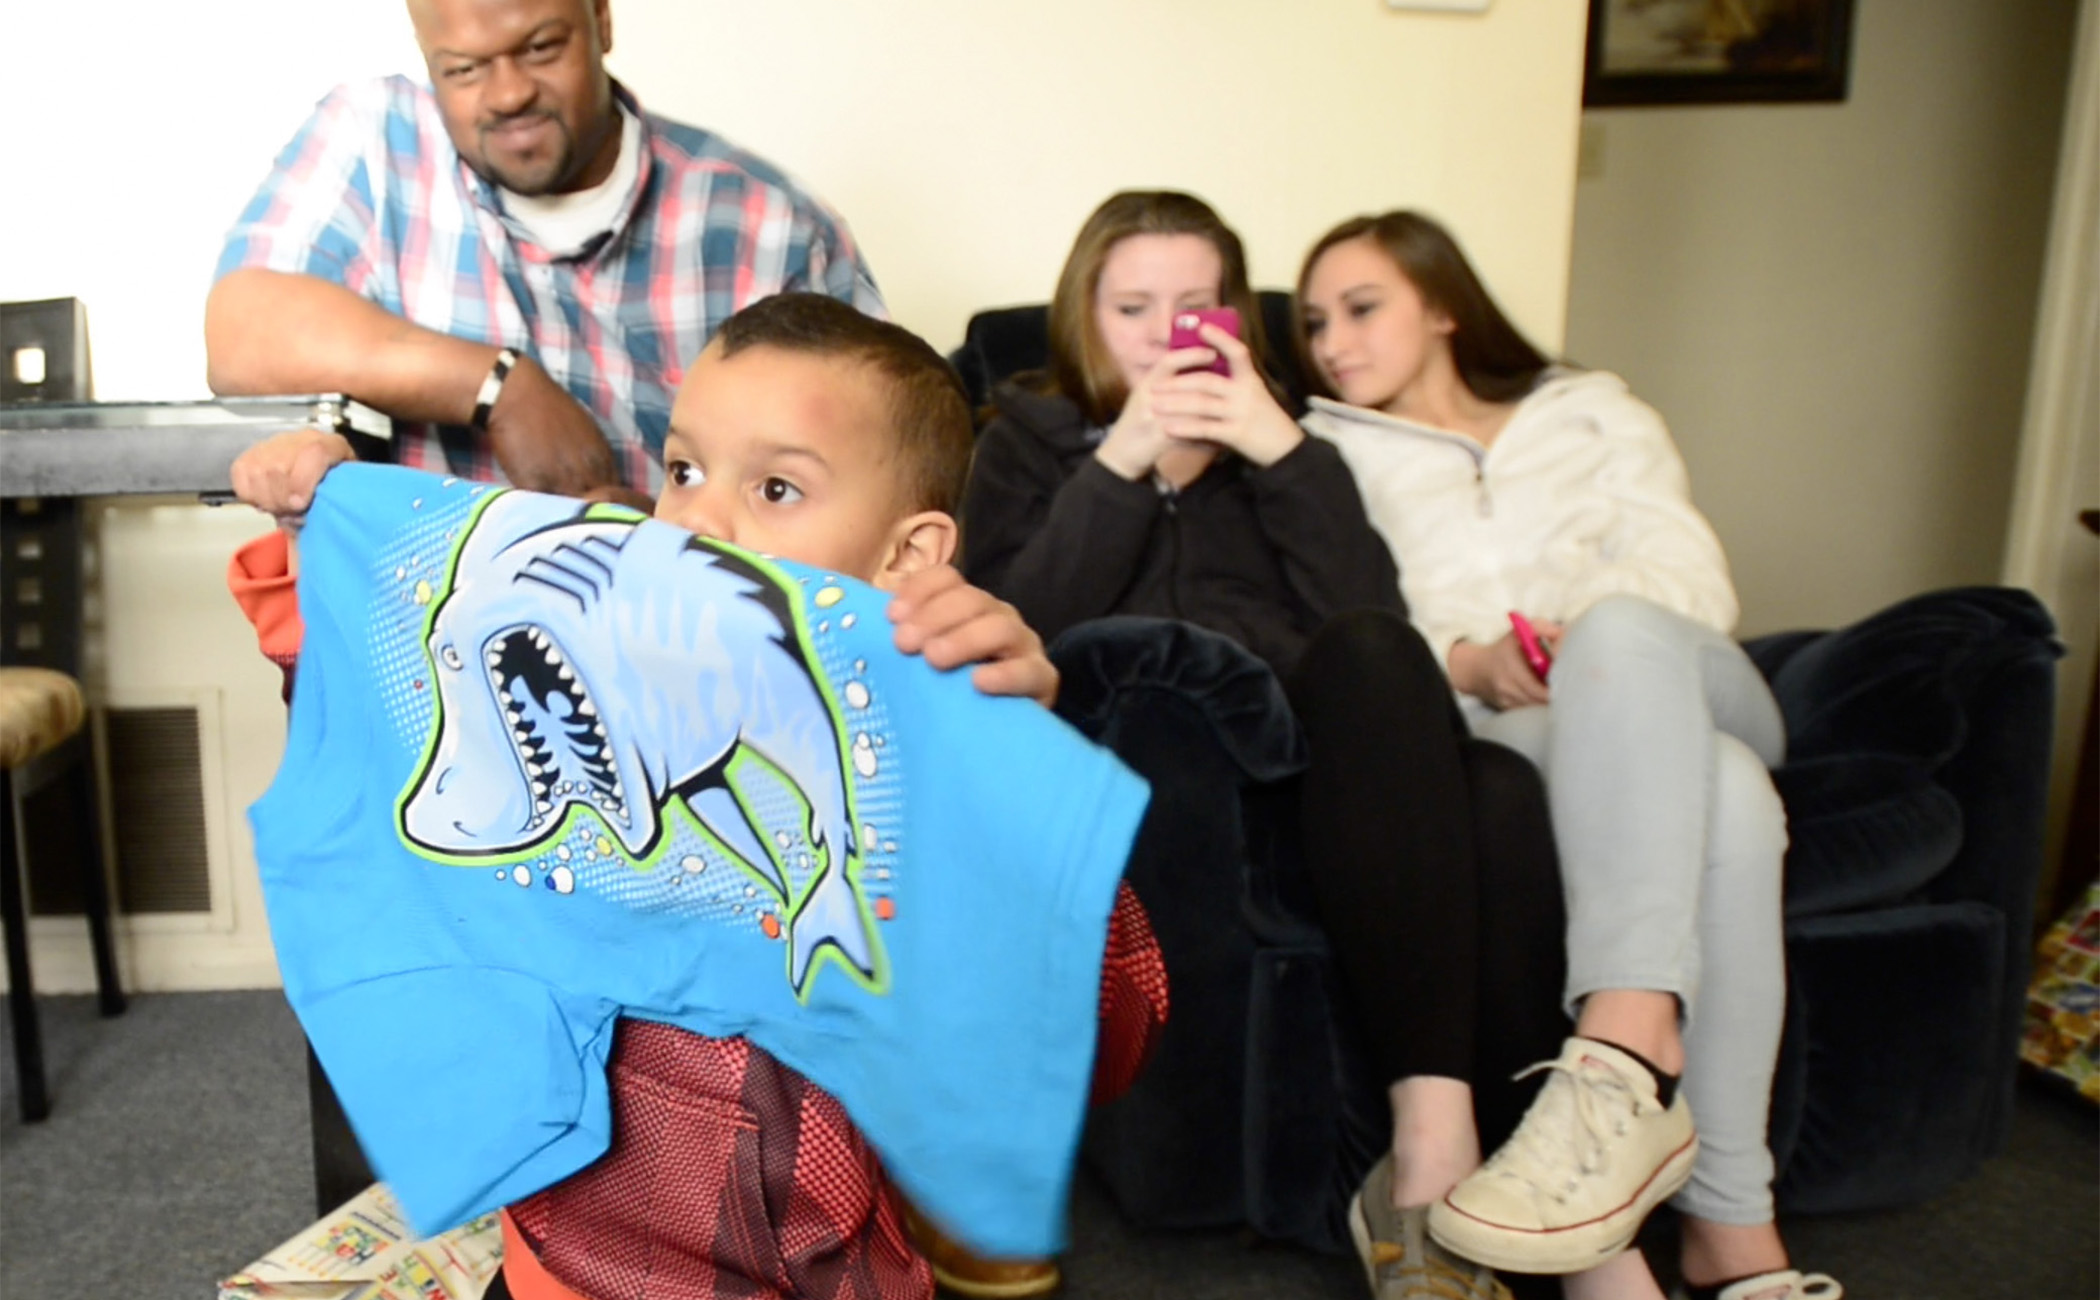 Brandy Lagasse, Tae's mother, takes pictures of him opening his presents. Doctors told the family a second surgery could cause the brain cancer to spread faster through Tae's body.